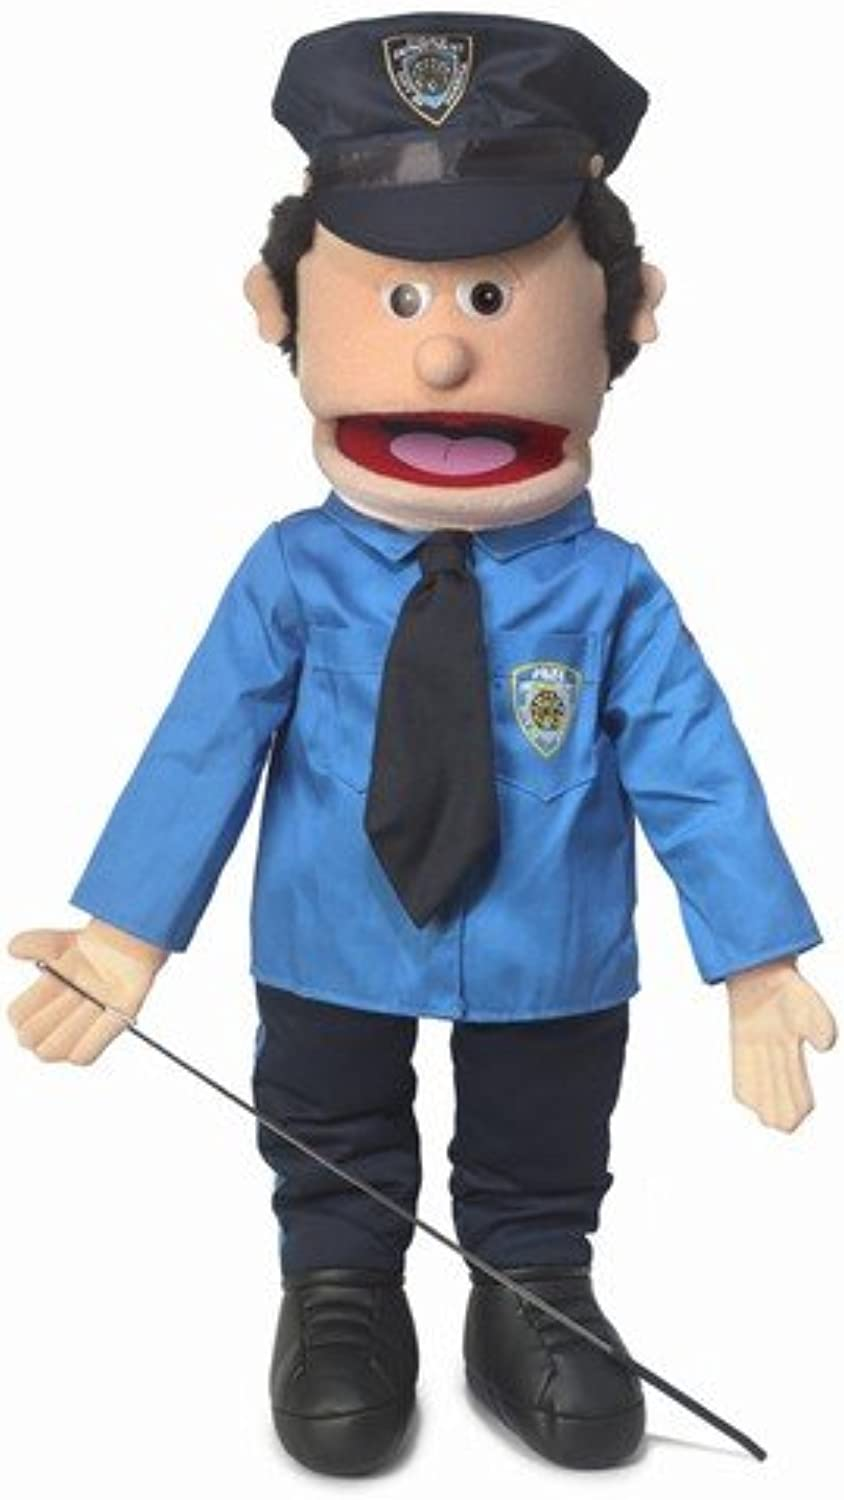 25  Policeman, Peach Male, Full Body, Ventriloquist Style Puppet